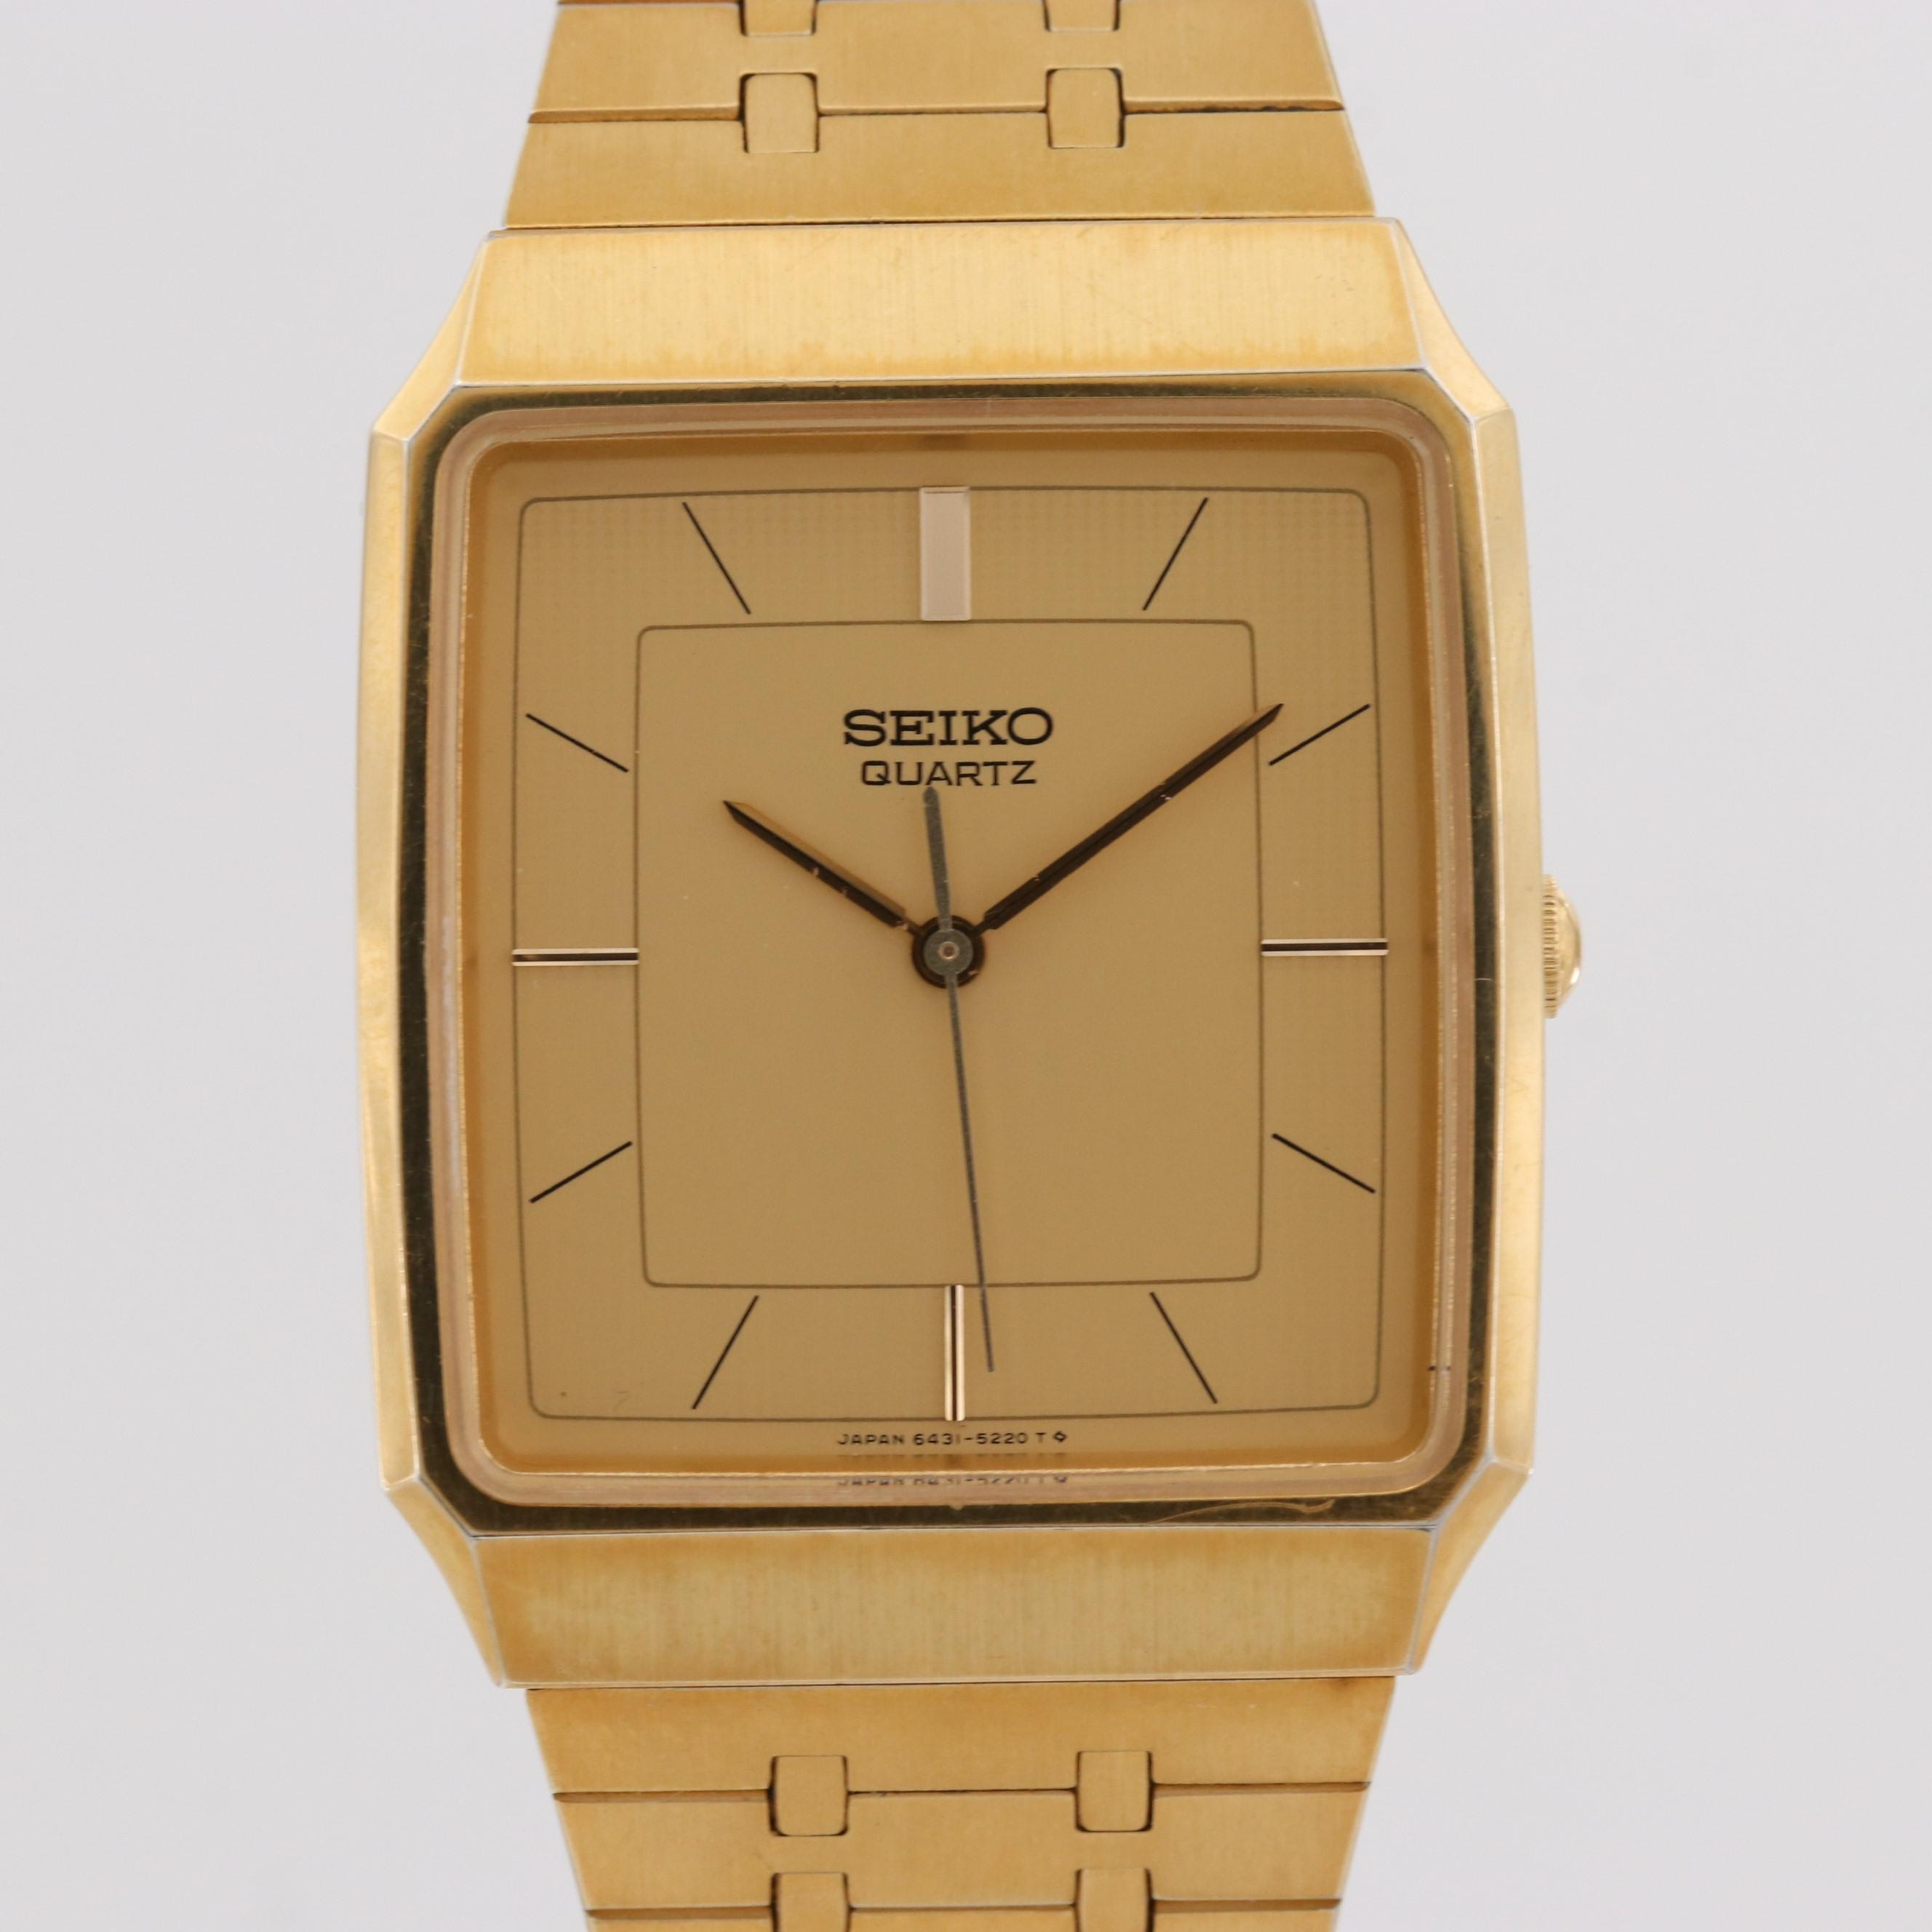 Seiko Gold Tone Quartz Wristwatch